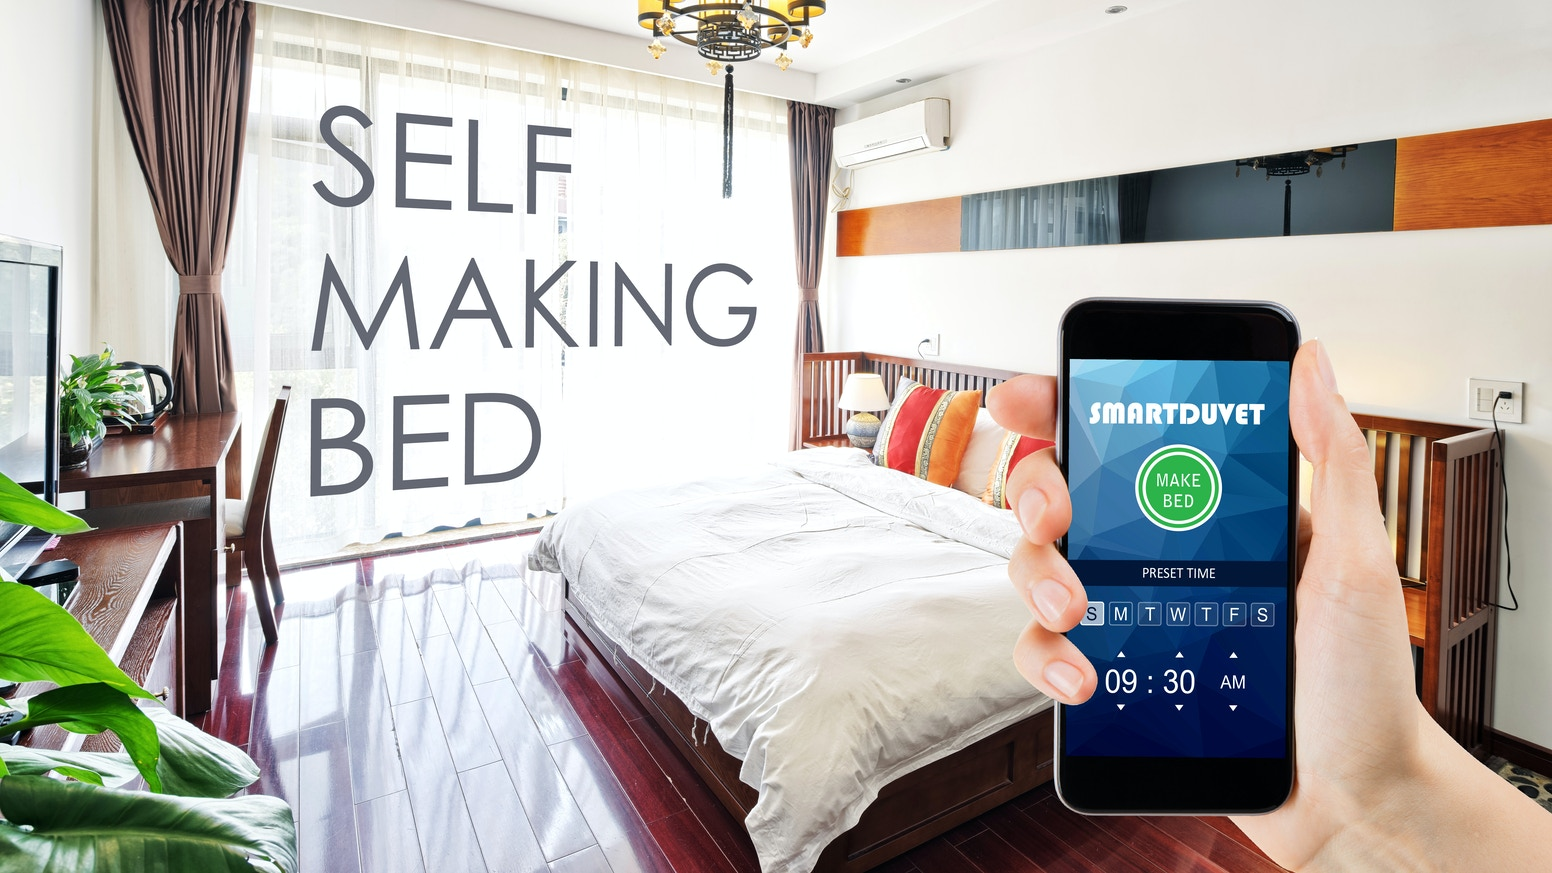 The World S First Easy And Universal Bed Making Solution A Seamless Device That Places